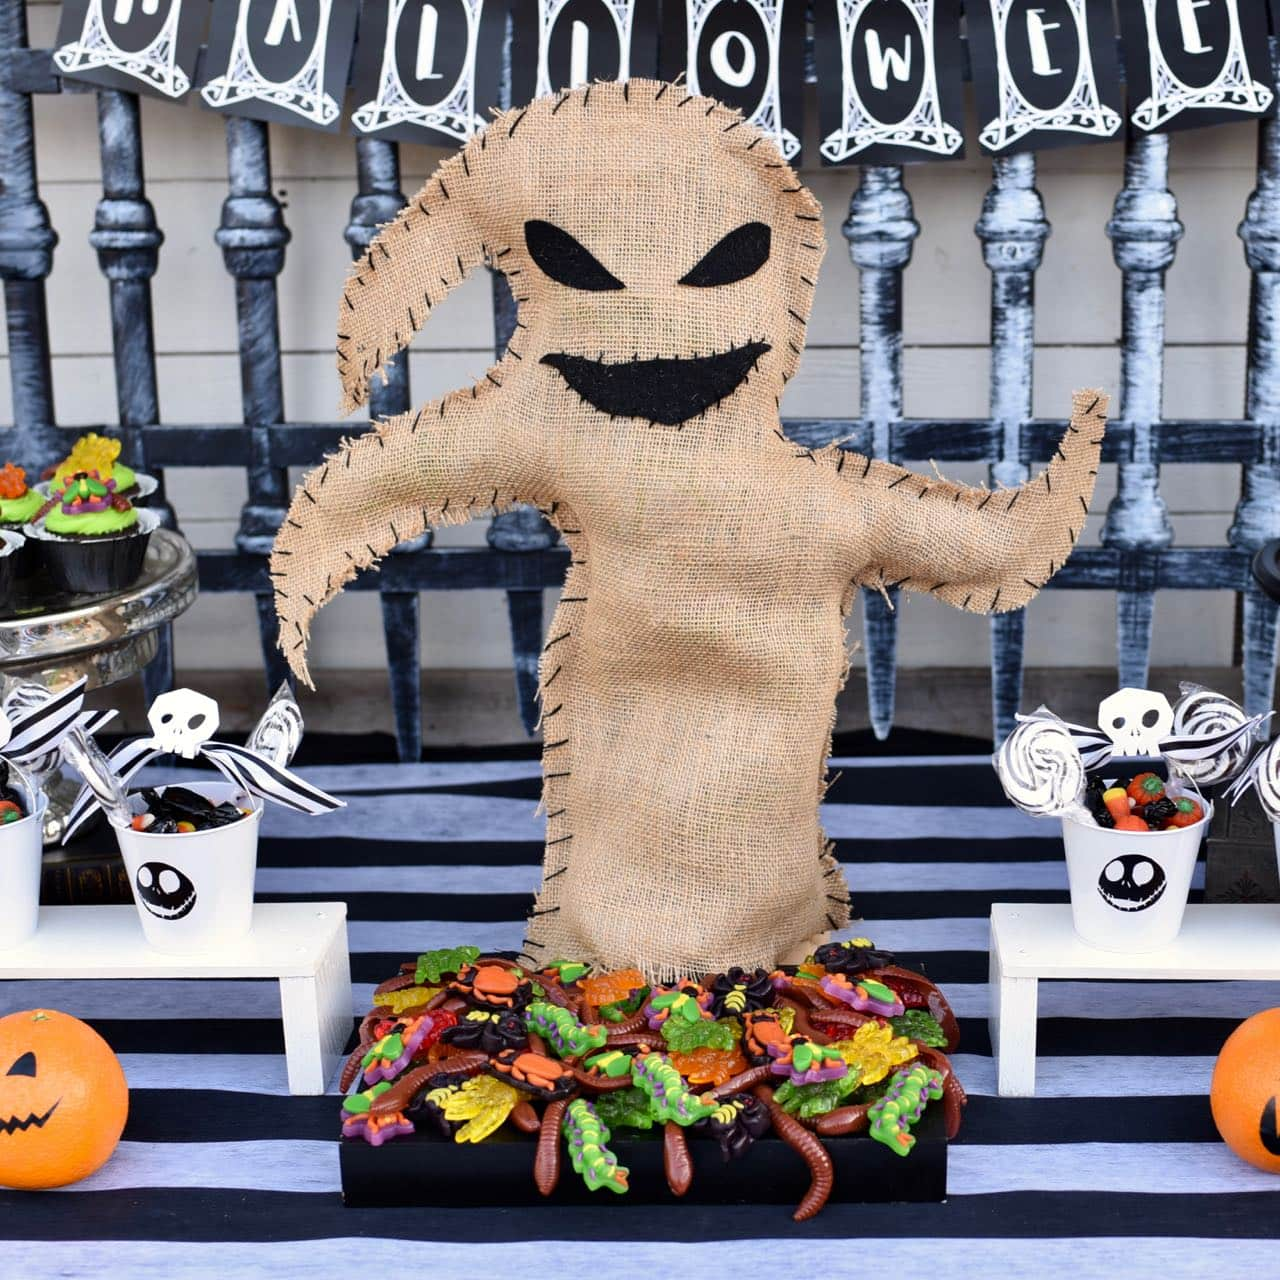 Oogie Boogie Halloween Party.Oogie Boogie Bug Platter For A Nightmare Before Christmas